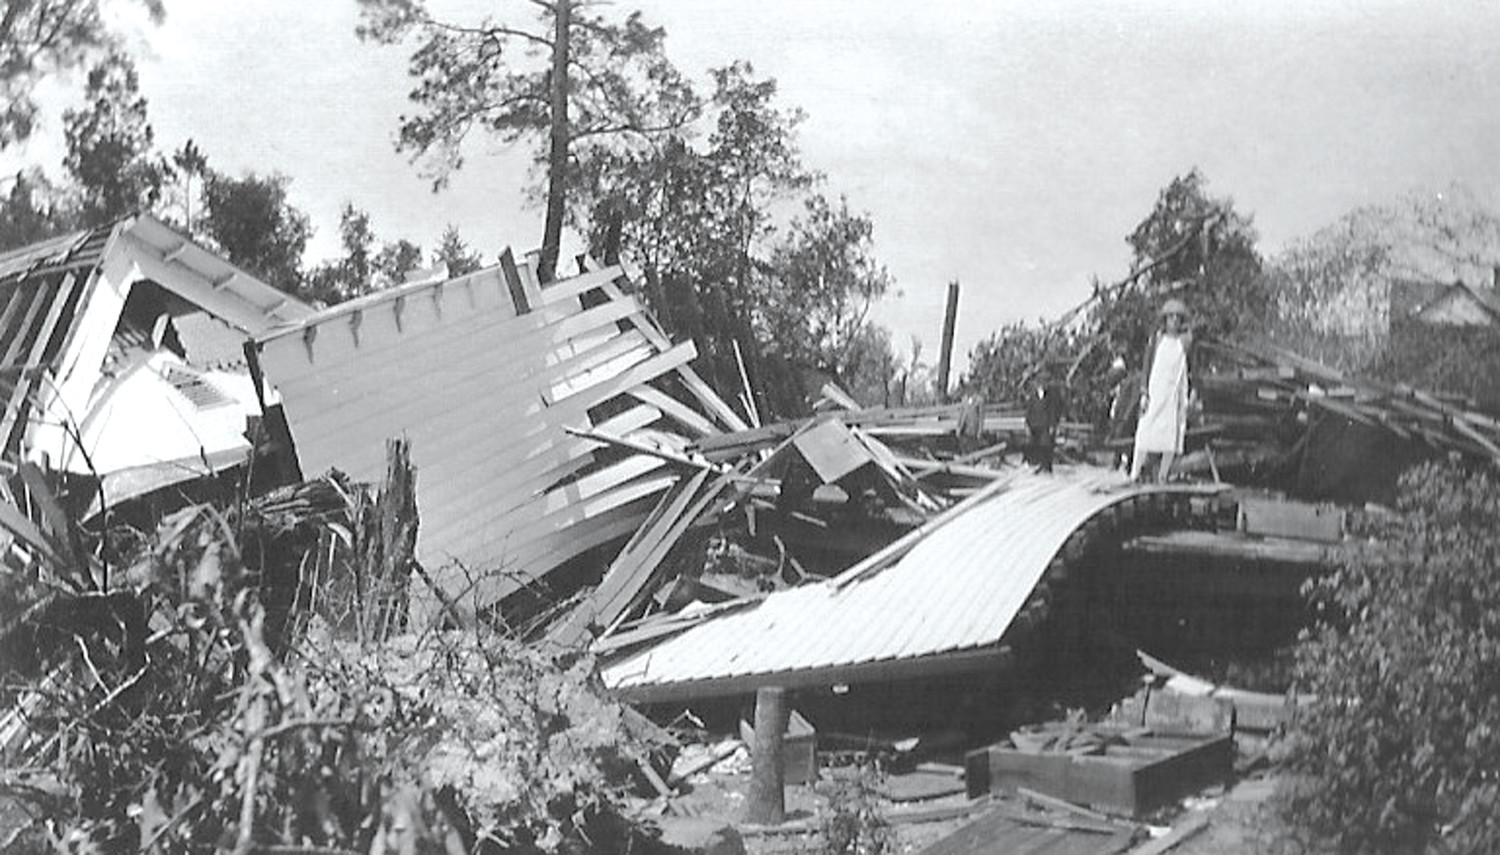 A school is seen heavily damaged in Horatio after the tornado.